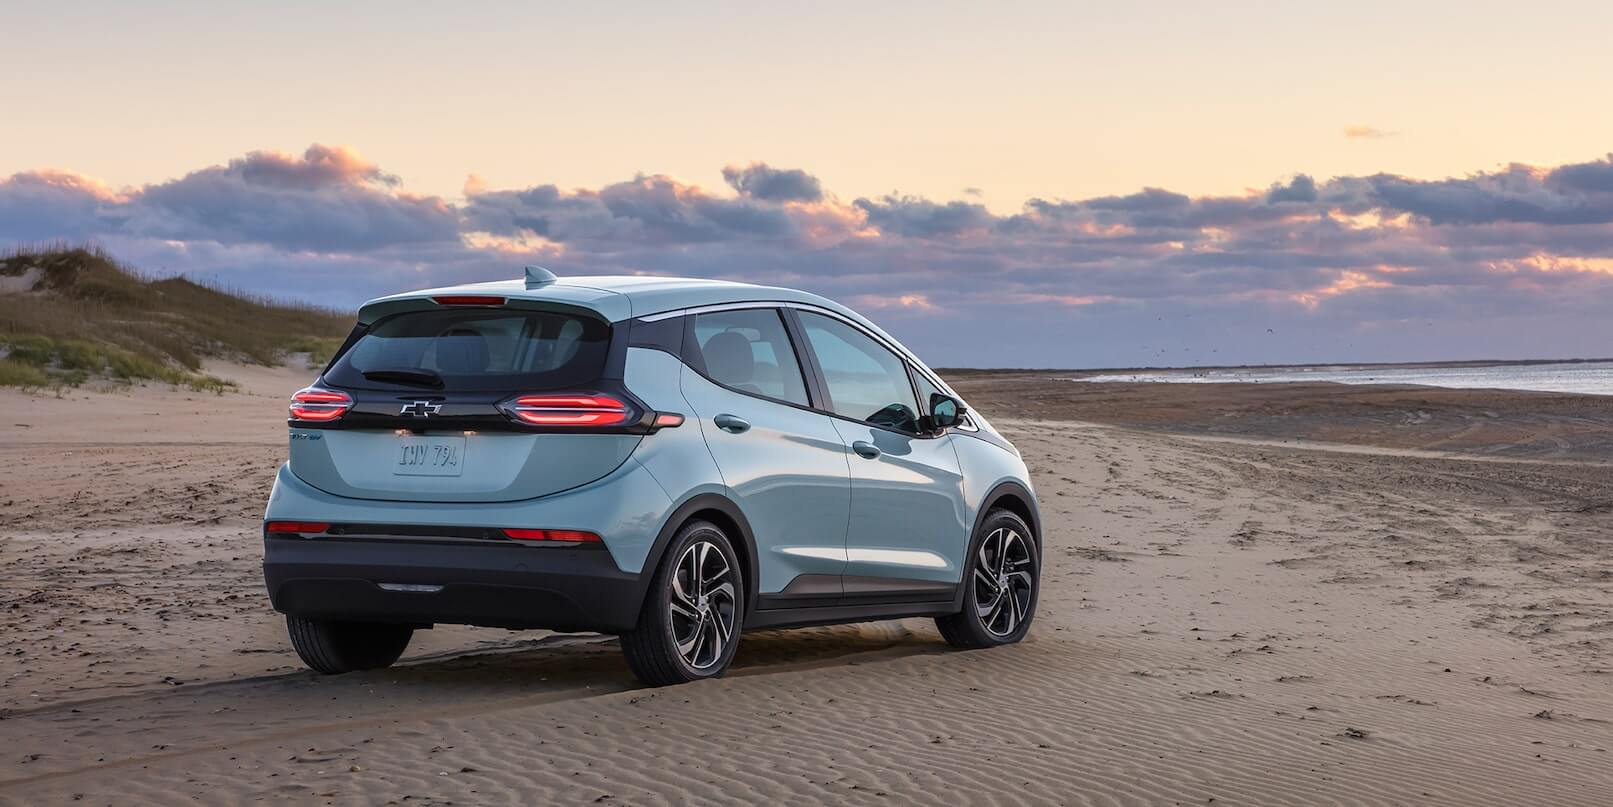 Right-rear exterior view of a parked 2022 Chevrolet Bolt EV.